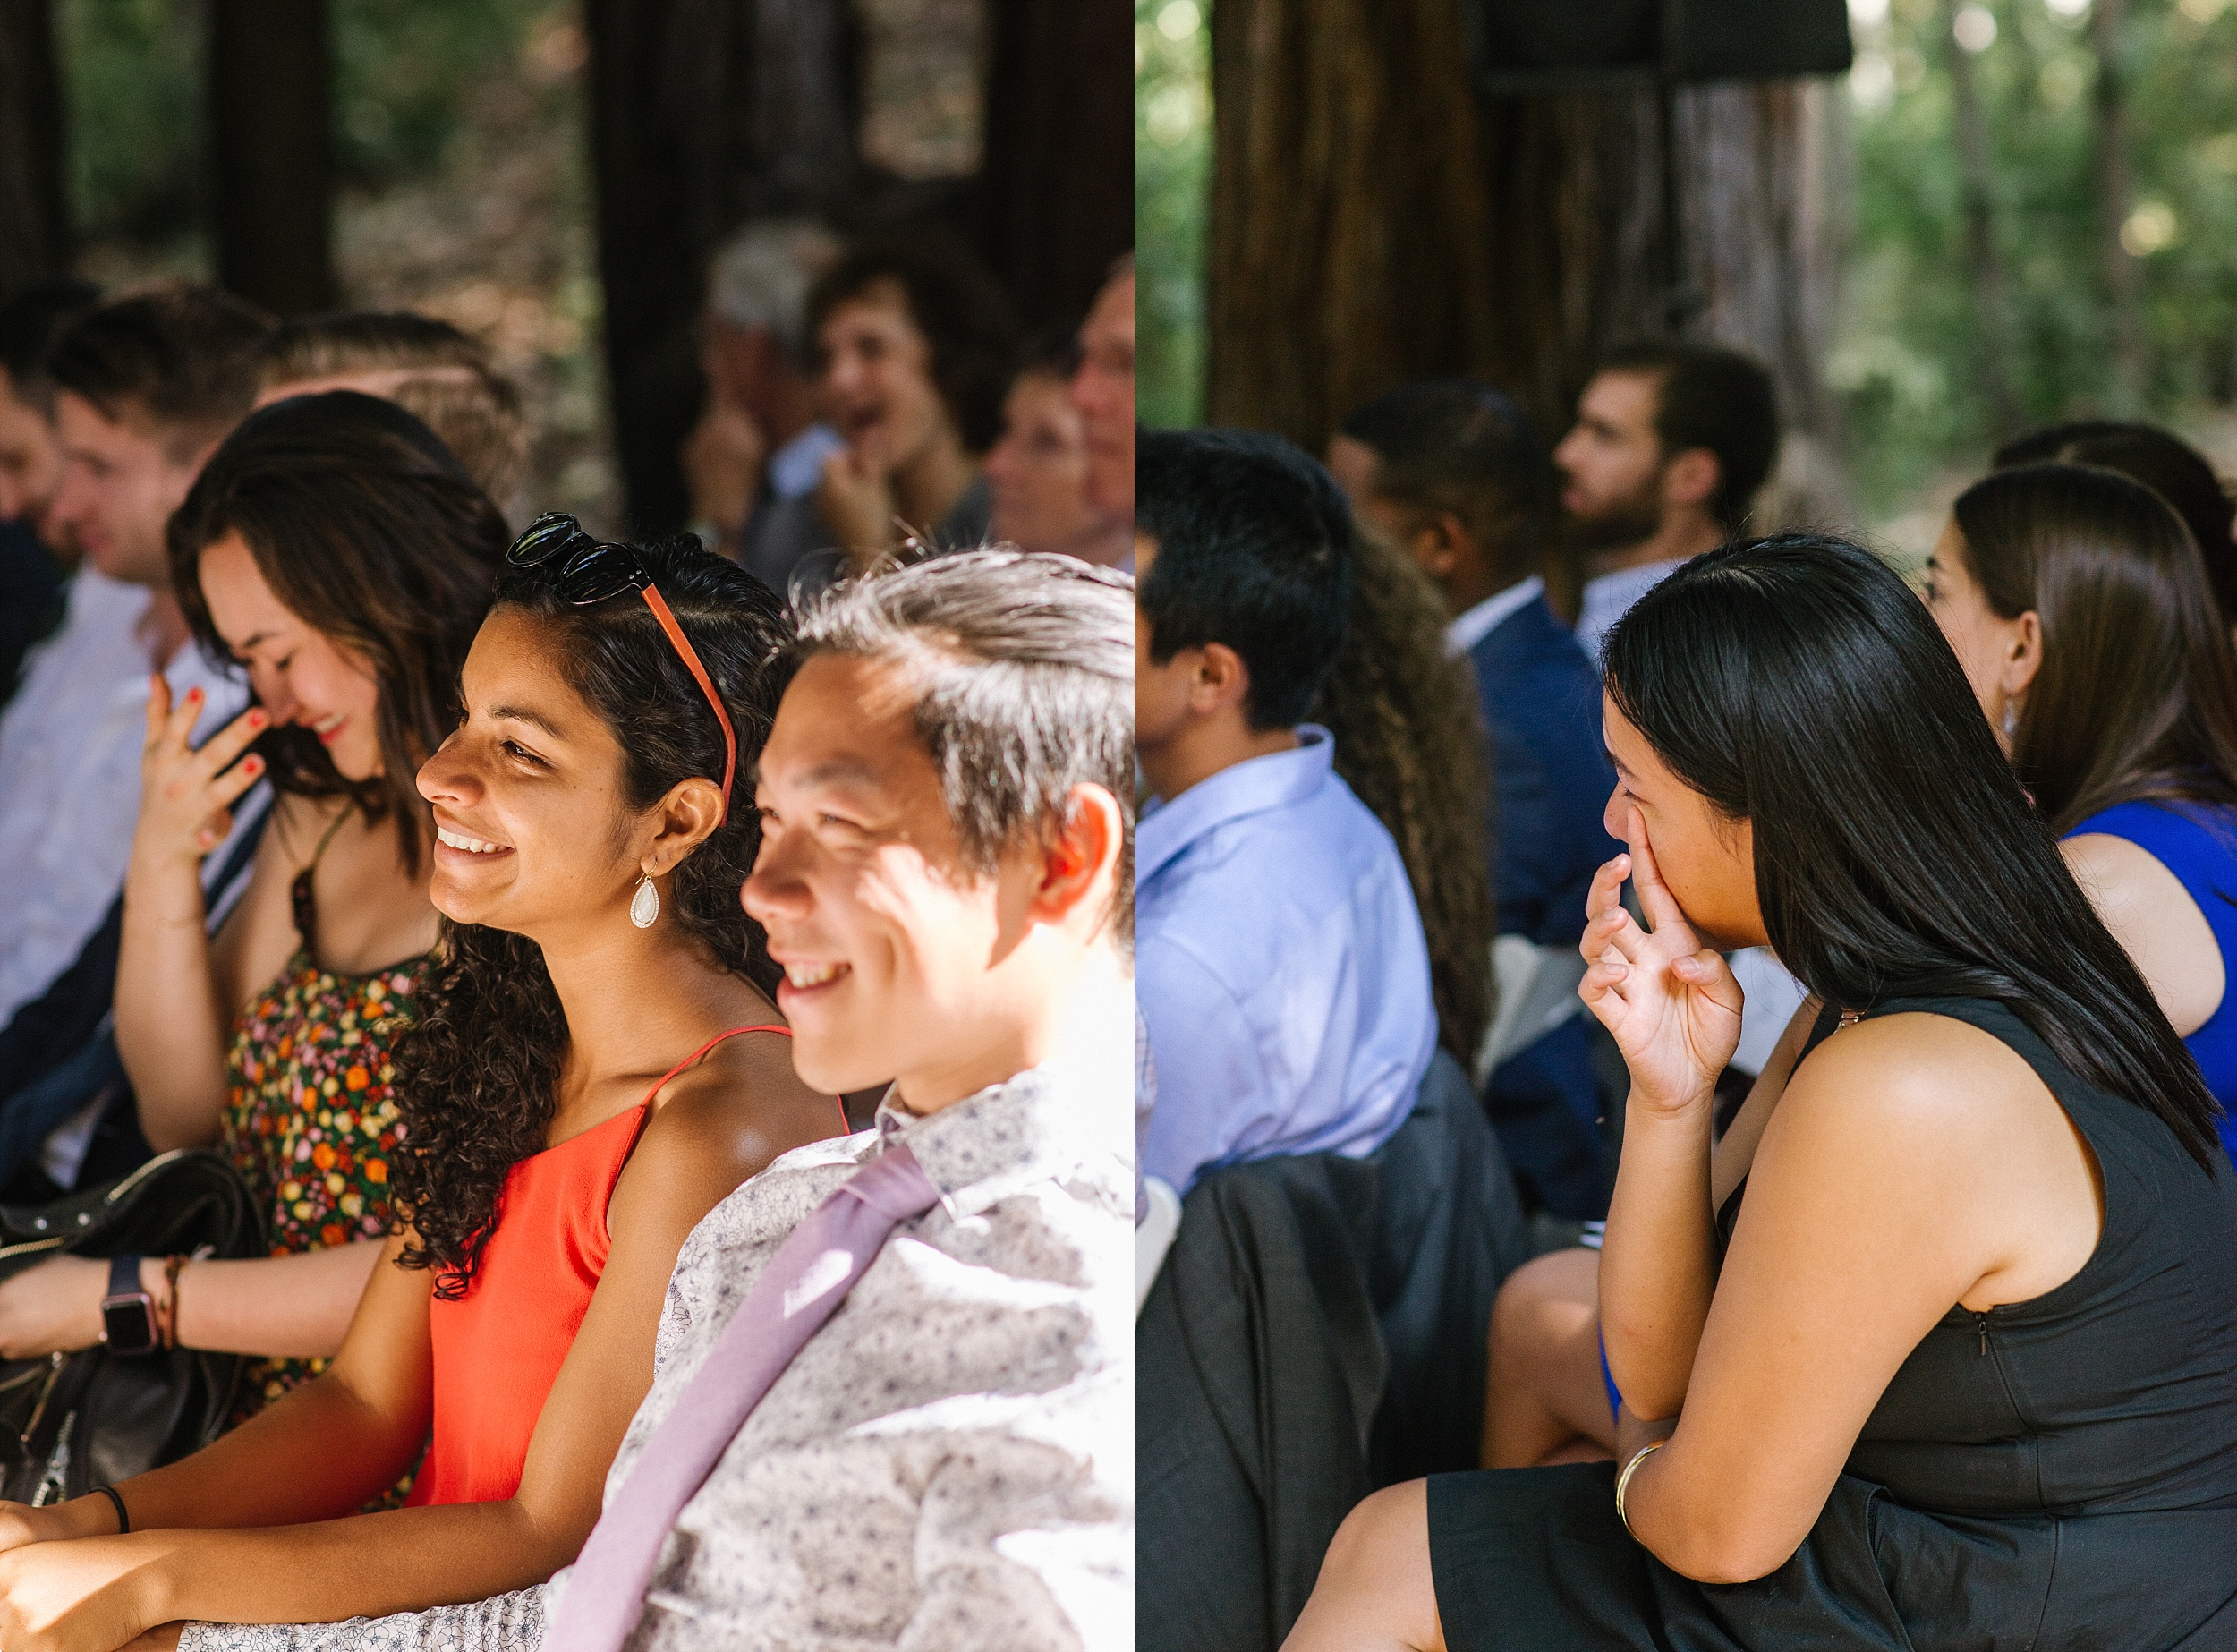 Amphitheatre-of-the-Redwoods-wedding-erikariley_chelsea-dier-photography_0053.jpg